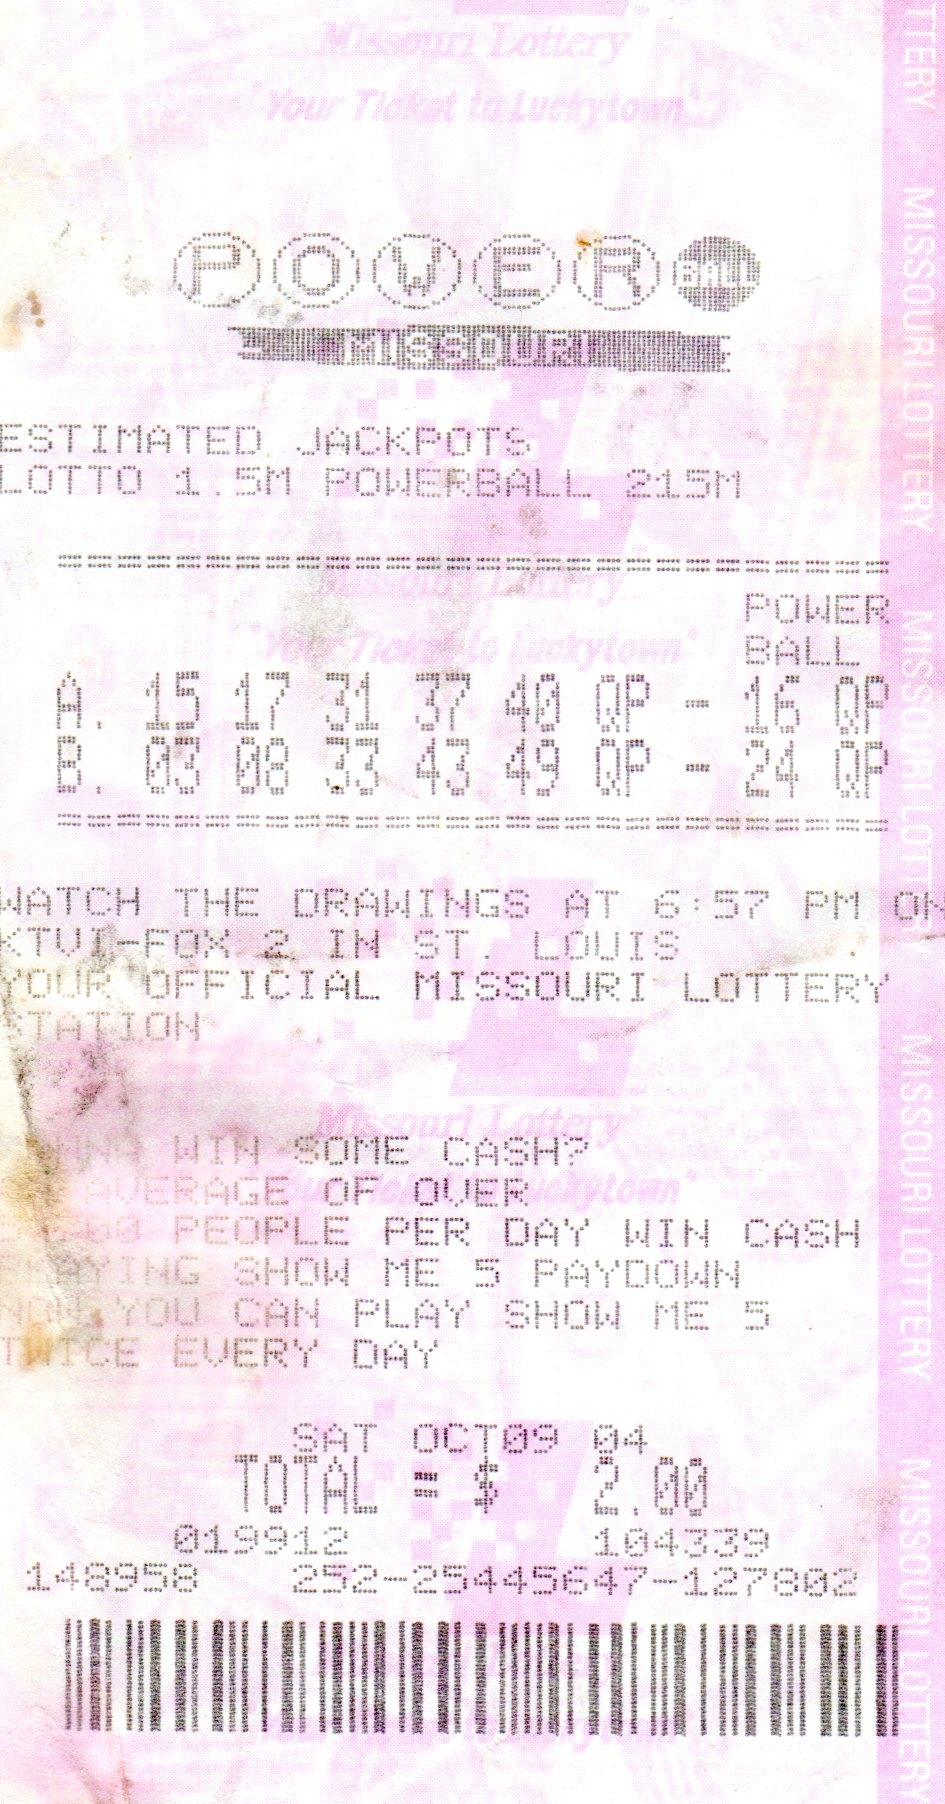 October 2004 Powerball Ticket